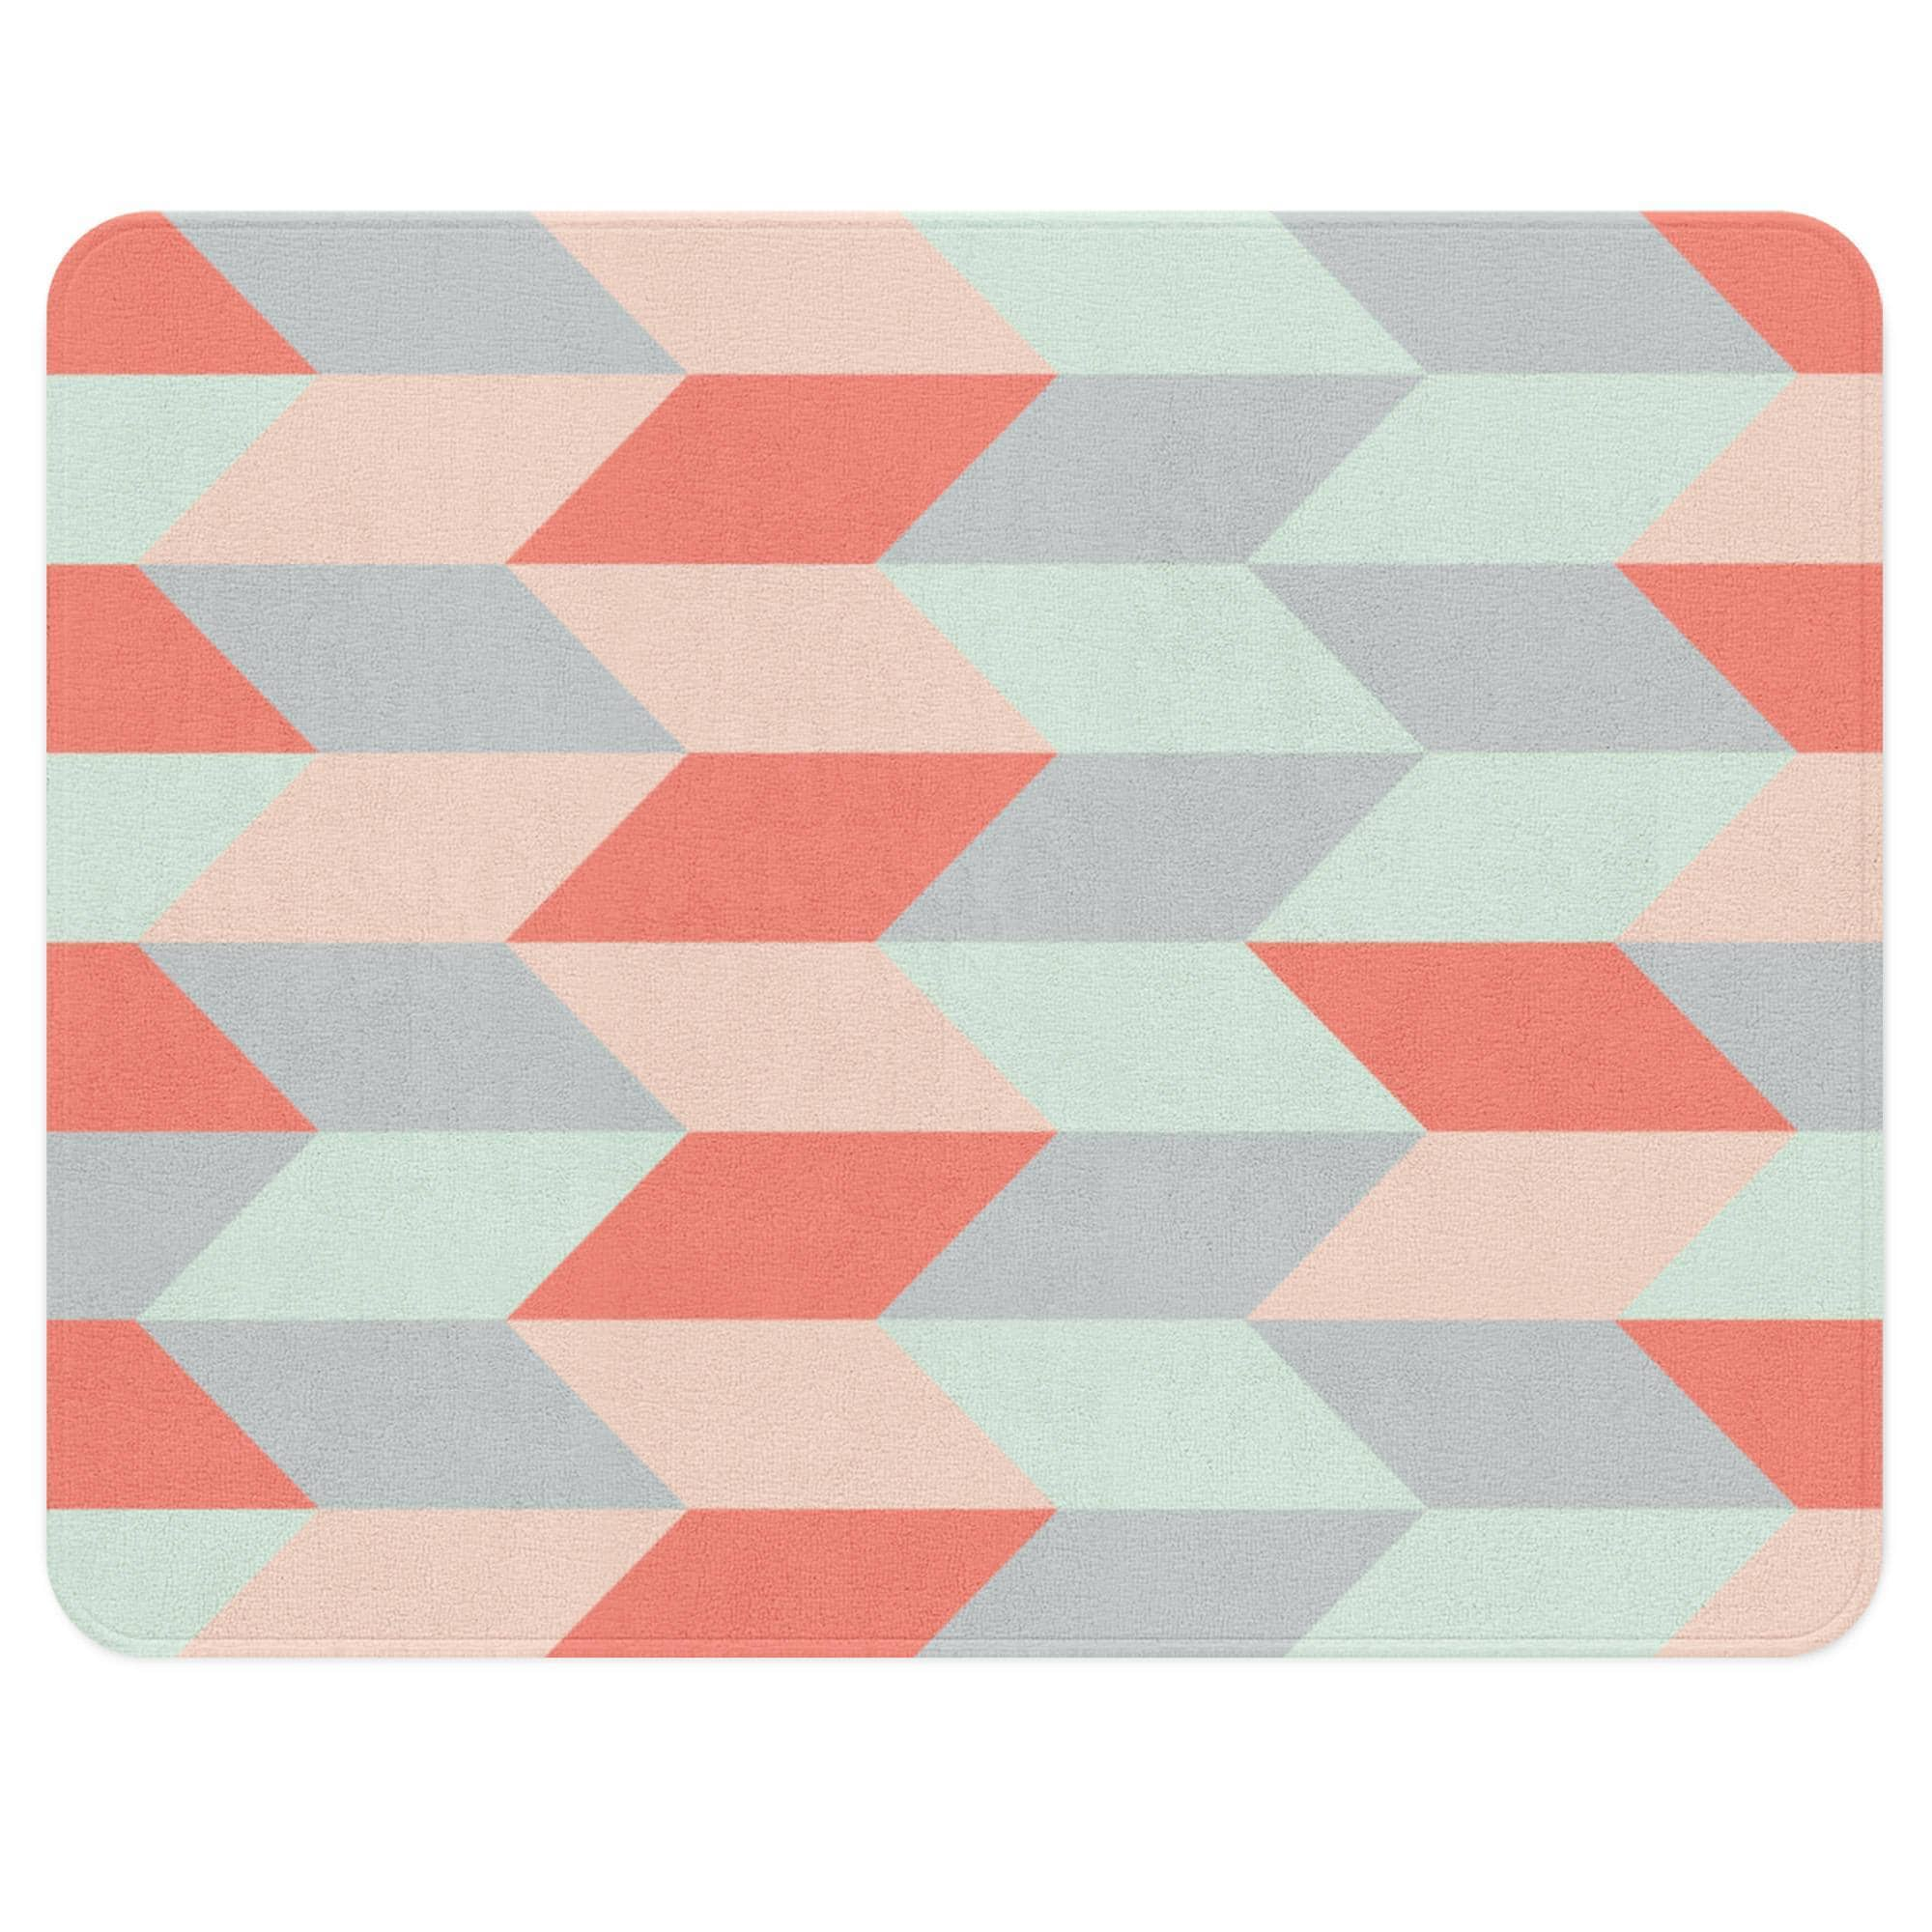 A geometric rug with the herringbone pattern. This neutral rug has different colors such as mint, gray, blush and peach. The color scheme gives it an over all neutral and elegant look. This rectangular rug will add some vintage charm to your child's nursery.